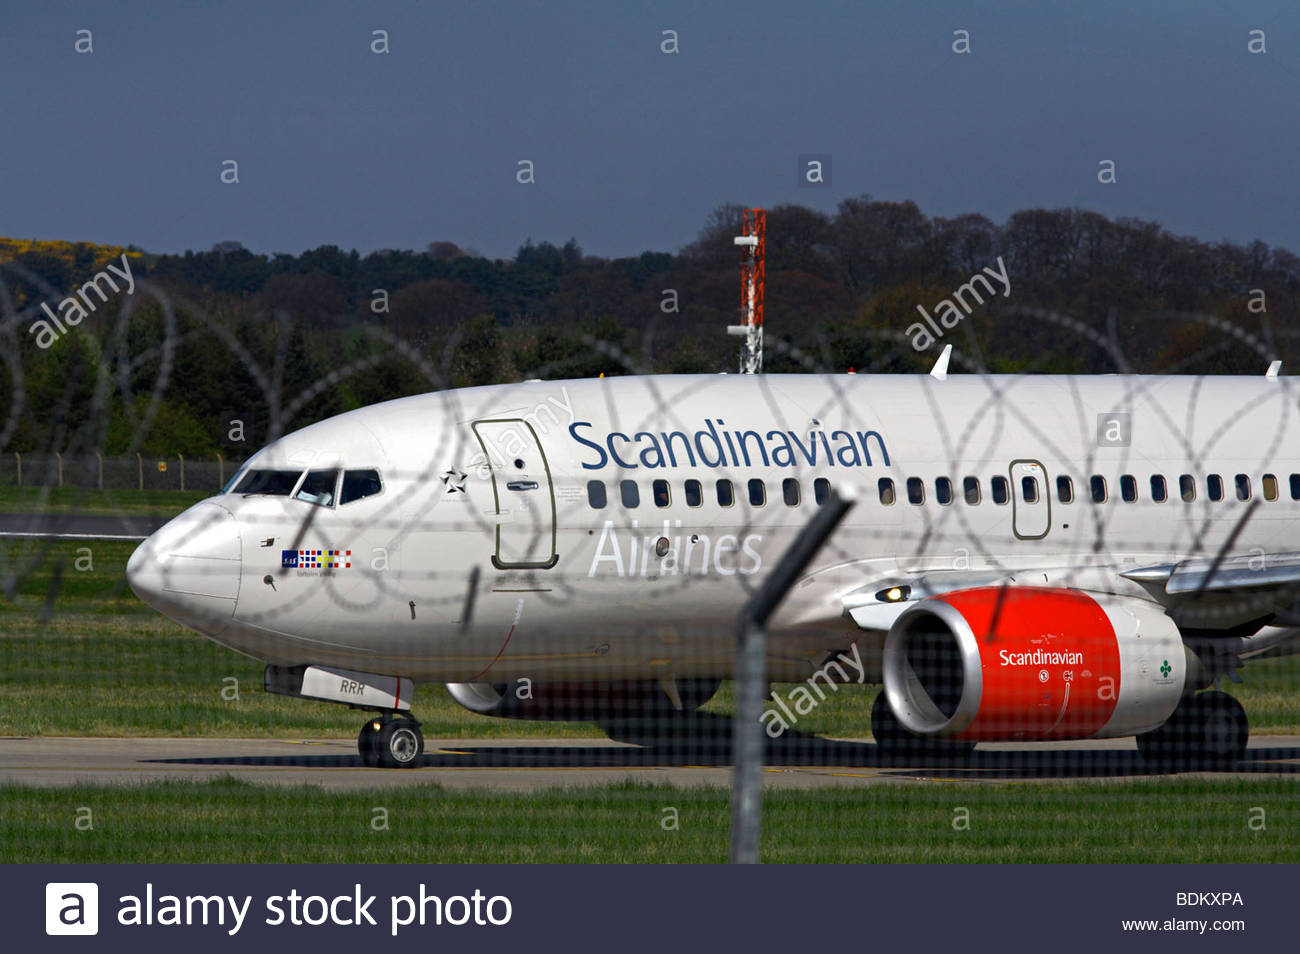 Scandinavian Airlines flight taxiing at airport - Stock Image